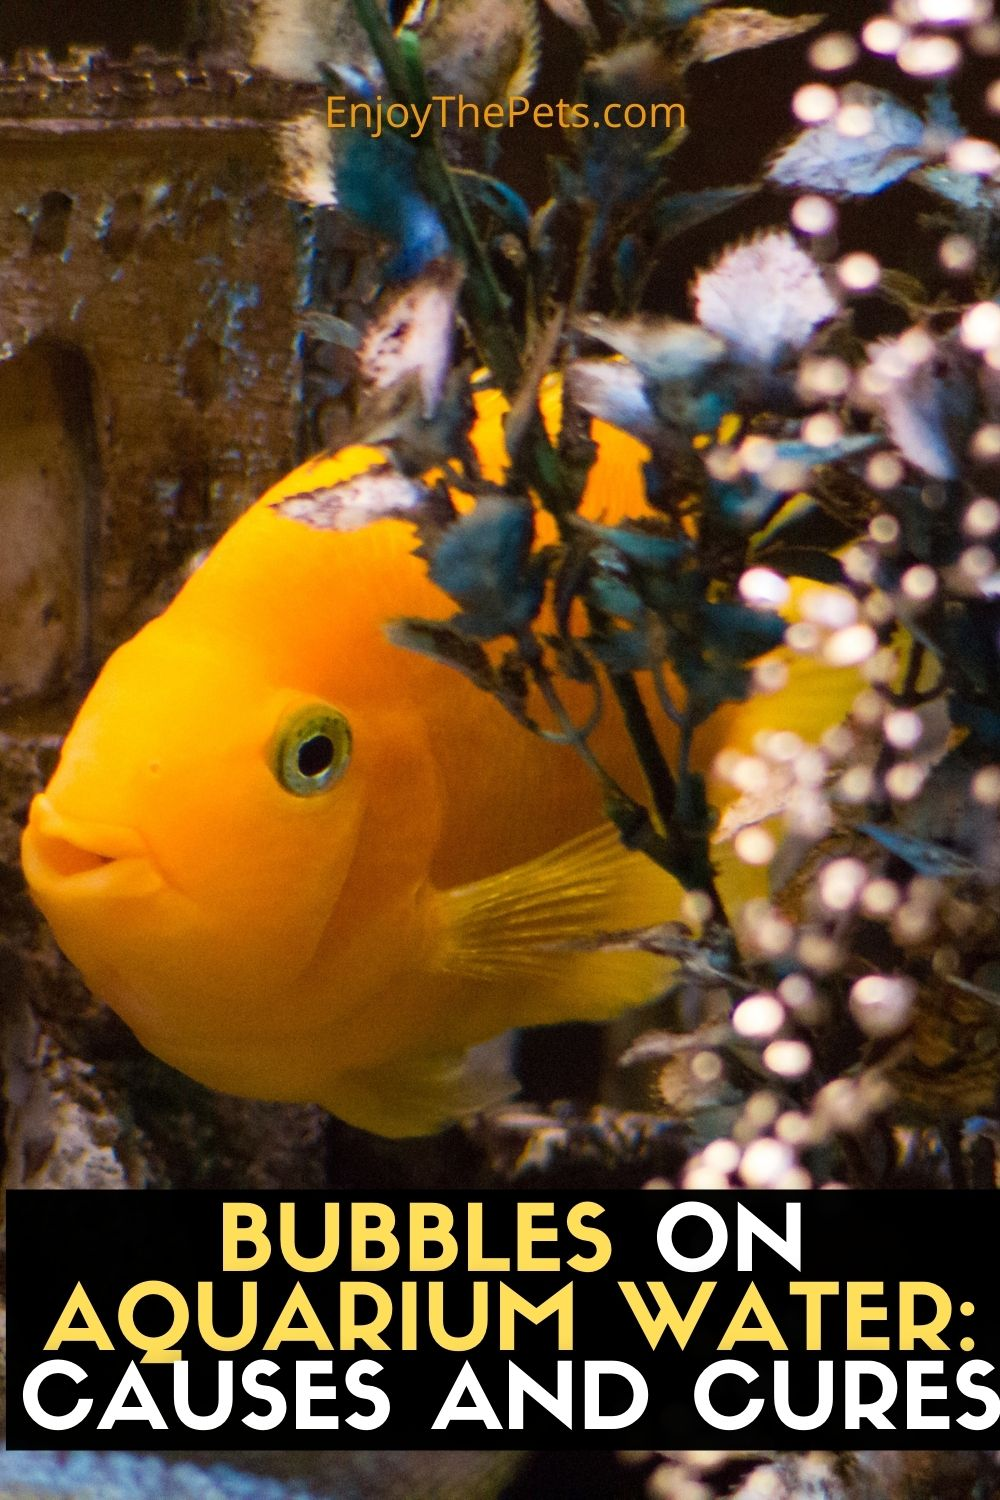 BUBBLES ON AQUARIUM WATER_ CAUSES AND CURES